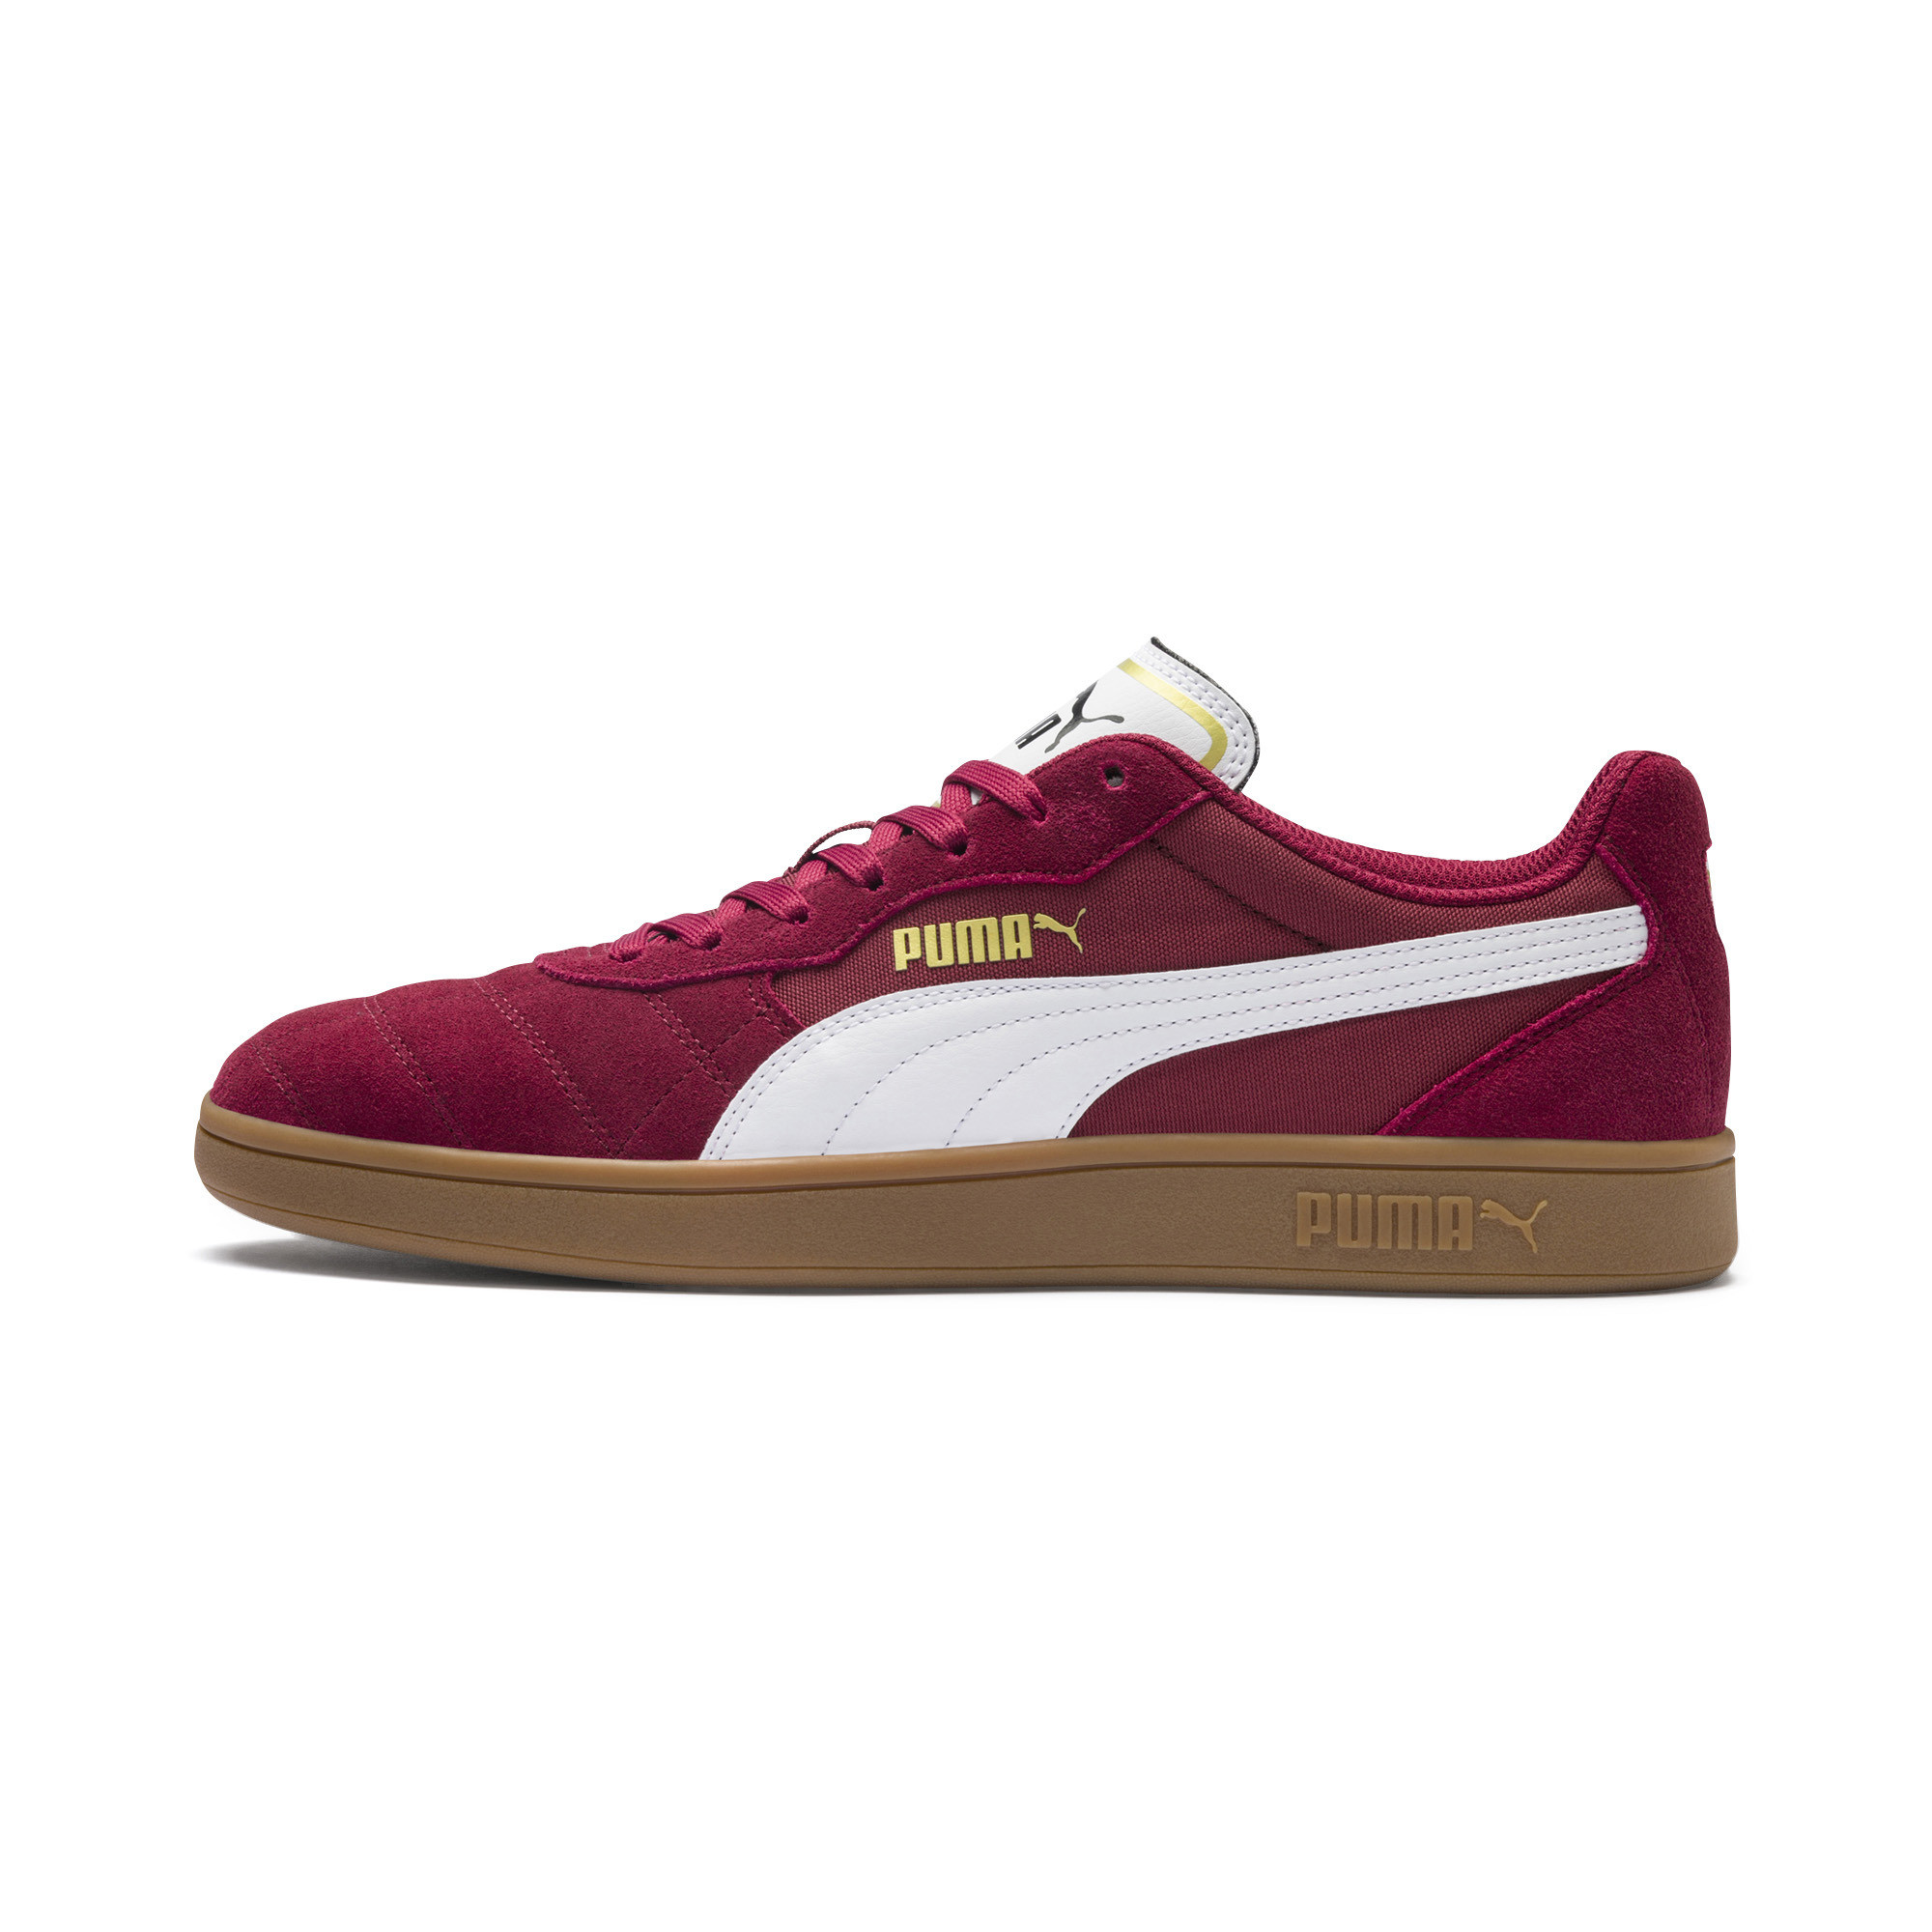 PUMA-Astro-Kick-Men-039-s-Sneakers-Men-Shoe-Basics thumbnail 4